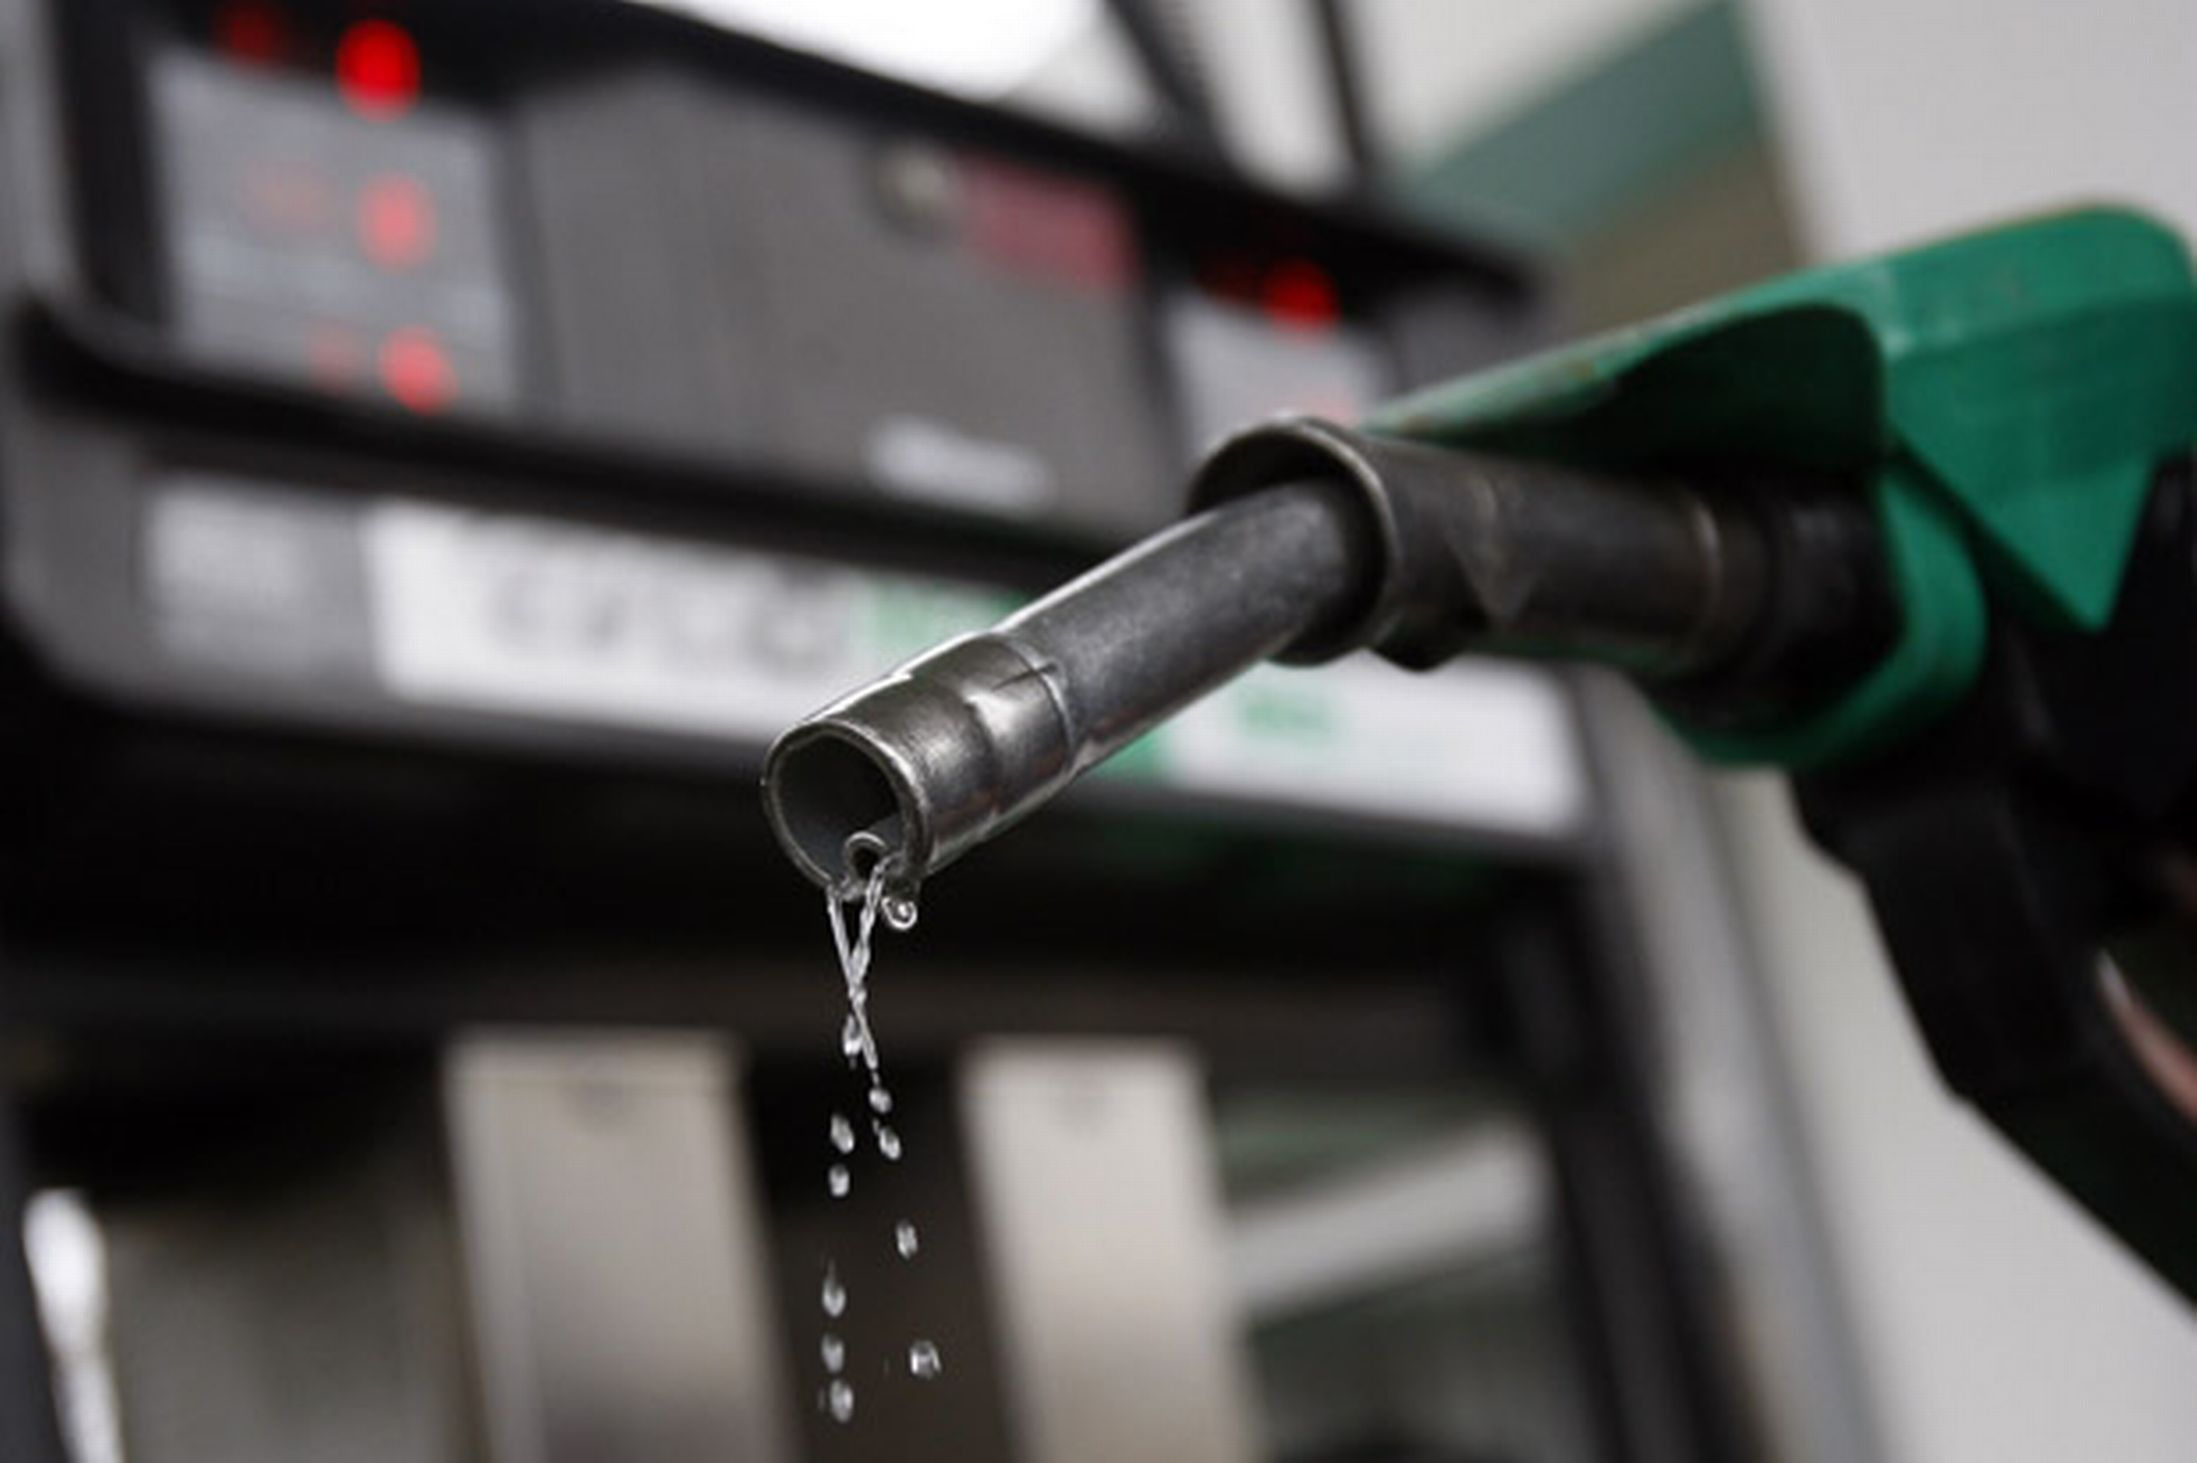 crude oil price falls petrol price may fall petrol deisel price slashed by 3 rs maharasthra cuts down fuel tax petrol diesel shortage due to tanker lorry strike petrol price shoot up